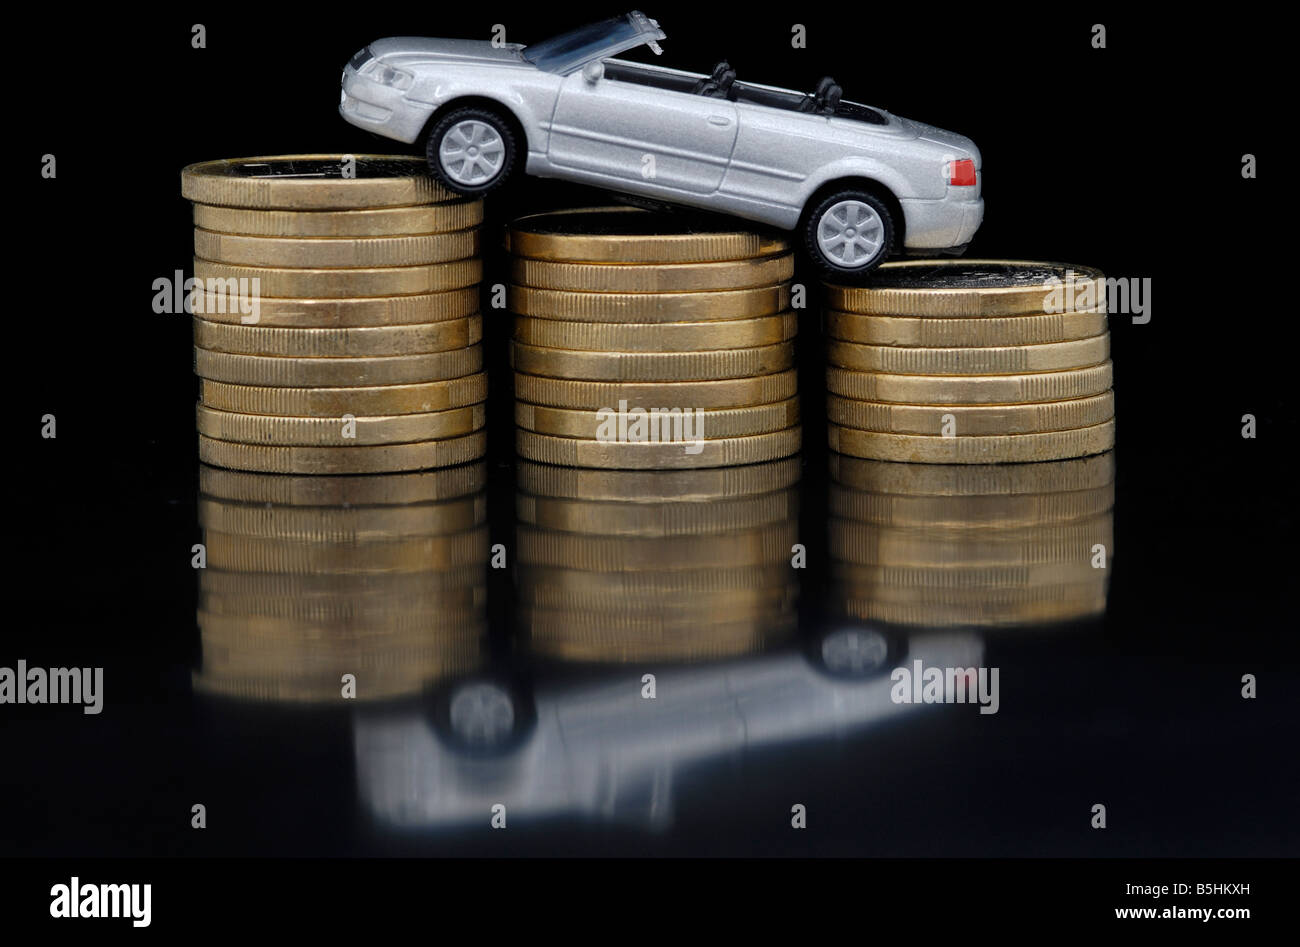 toy car upon some coins, taxes - Stock Image